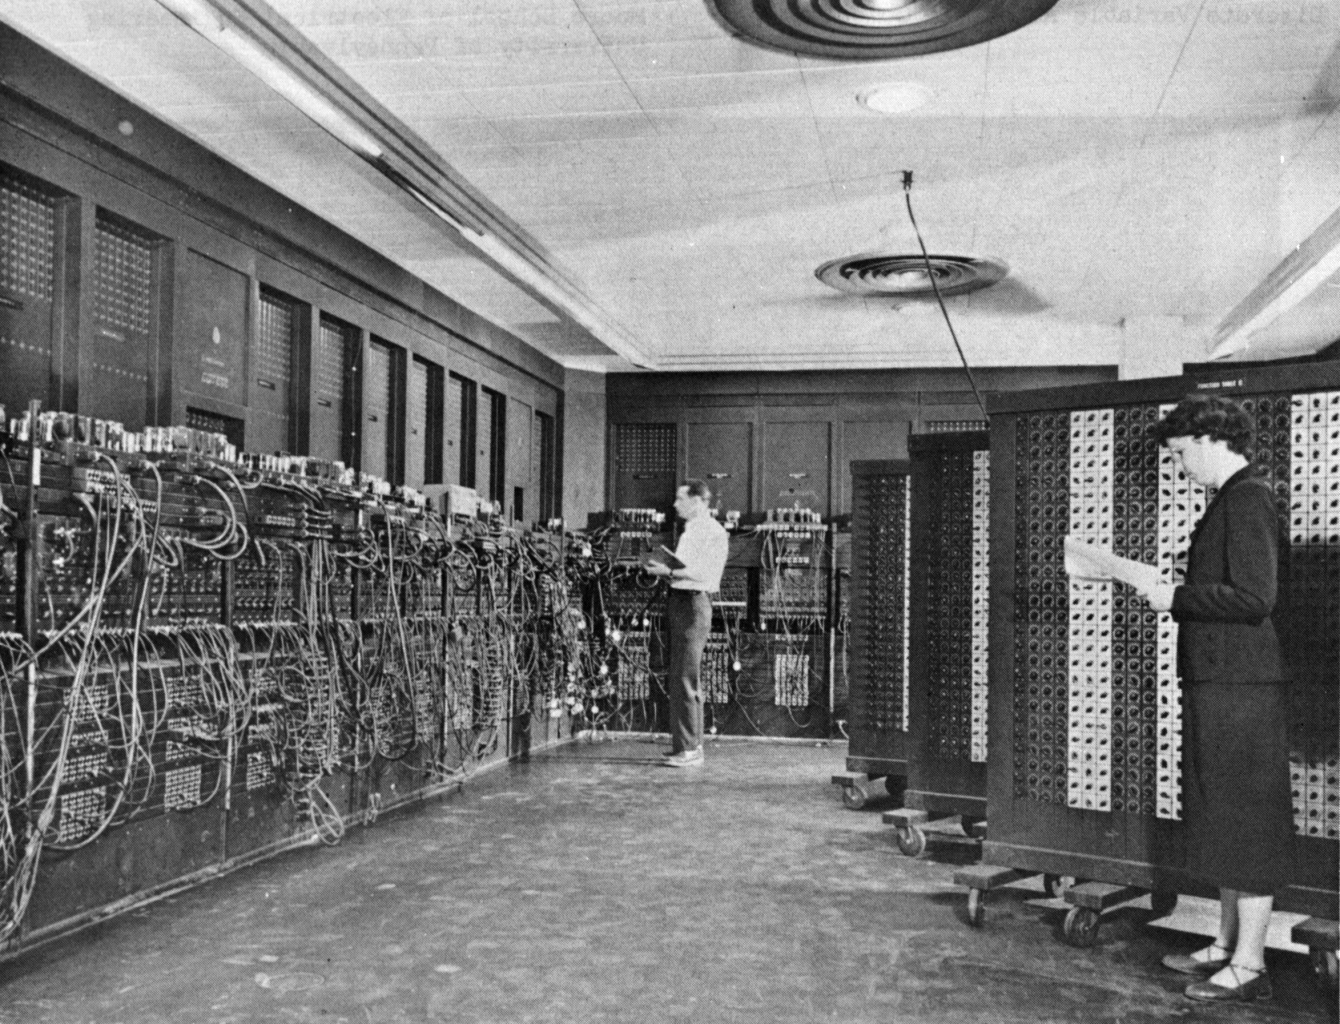 One of the first computers, ENIAC, in 1945. (Yes, it took up the whole room!)